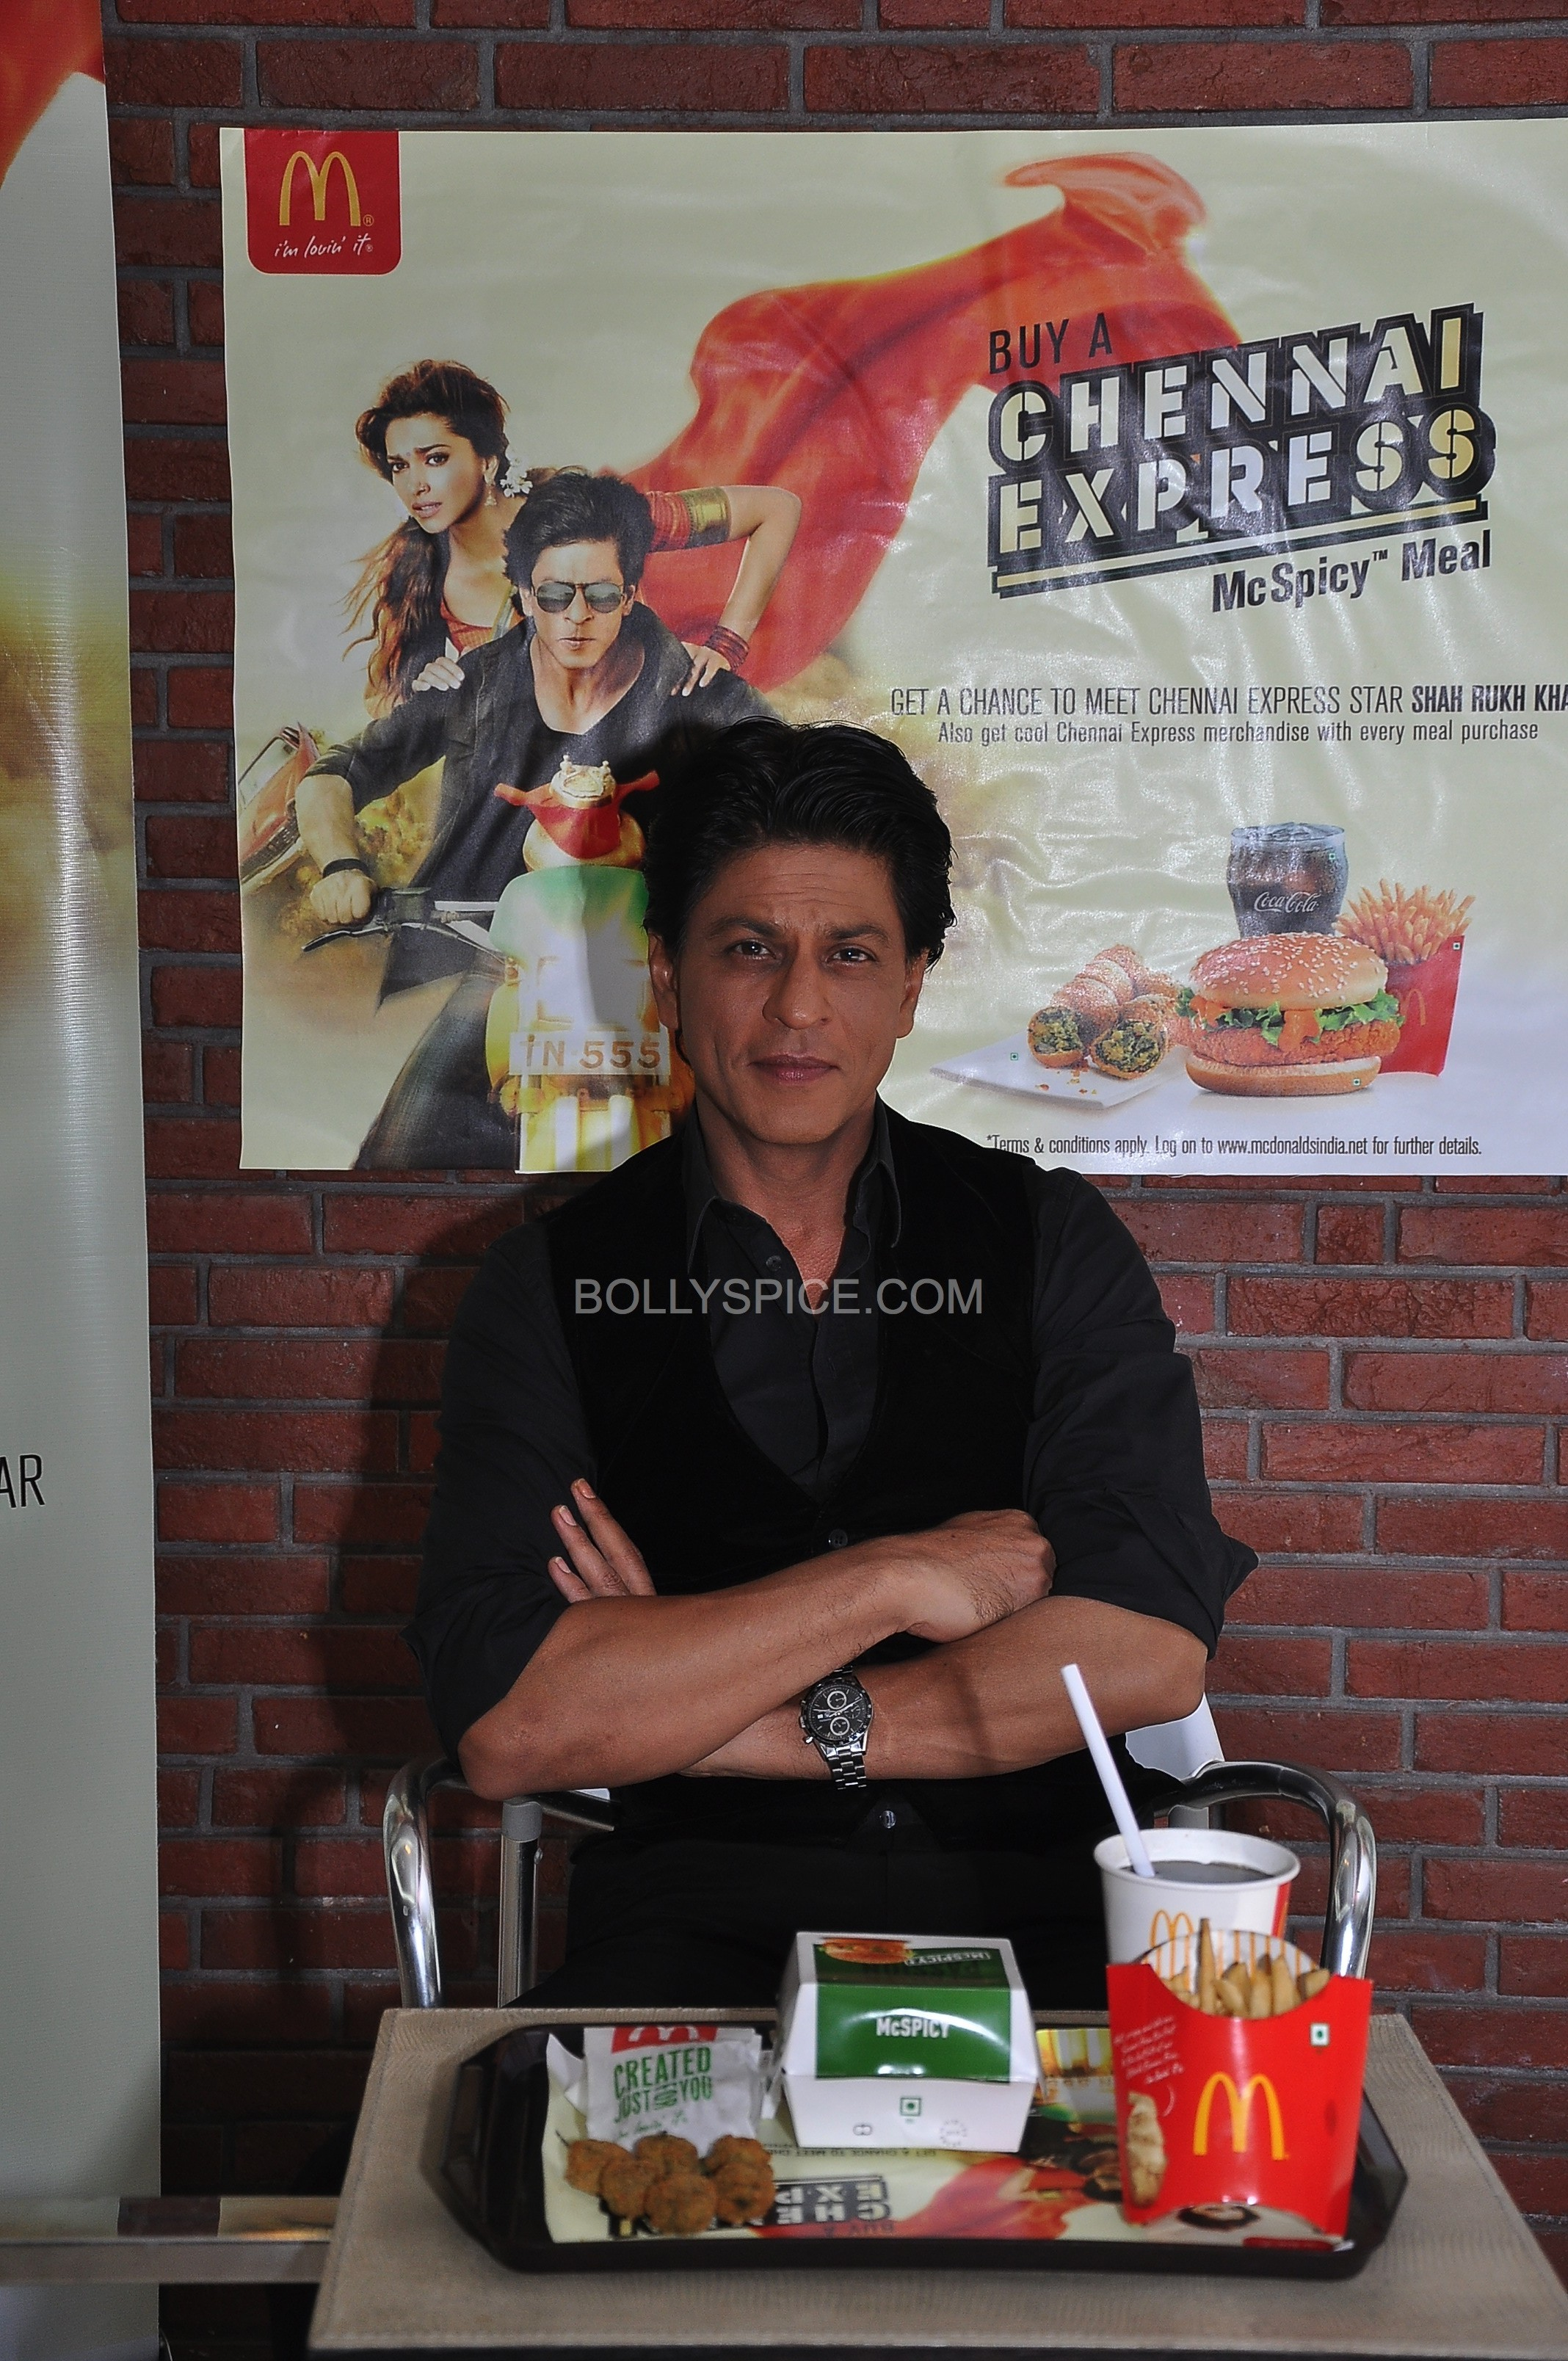 srkchennaiexpressmcdonalds06 e1375459042262 In Pictures and Video: Meet and Greet with King Khan in Delhi for the Chennai Express McSpicy Meal